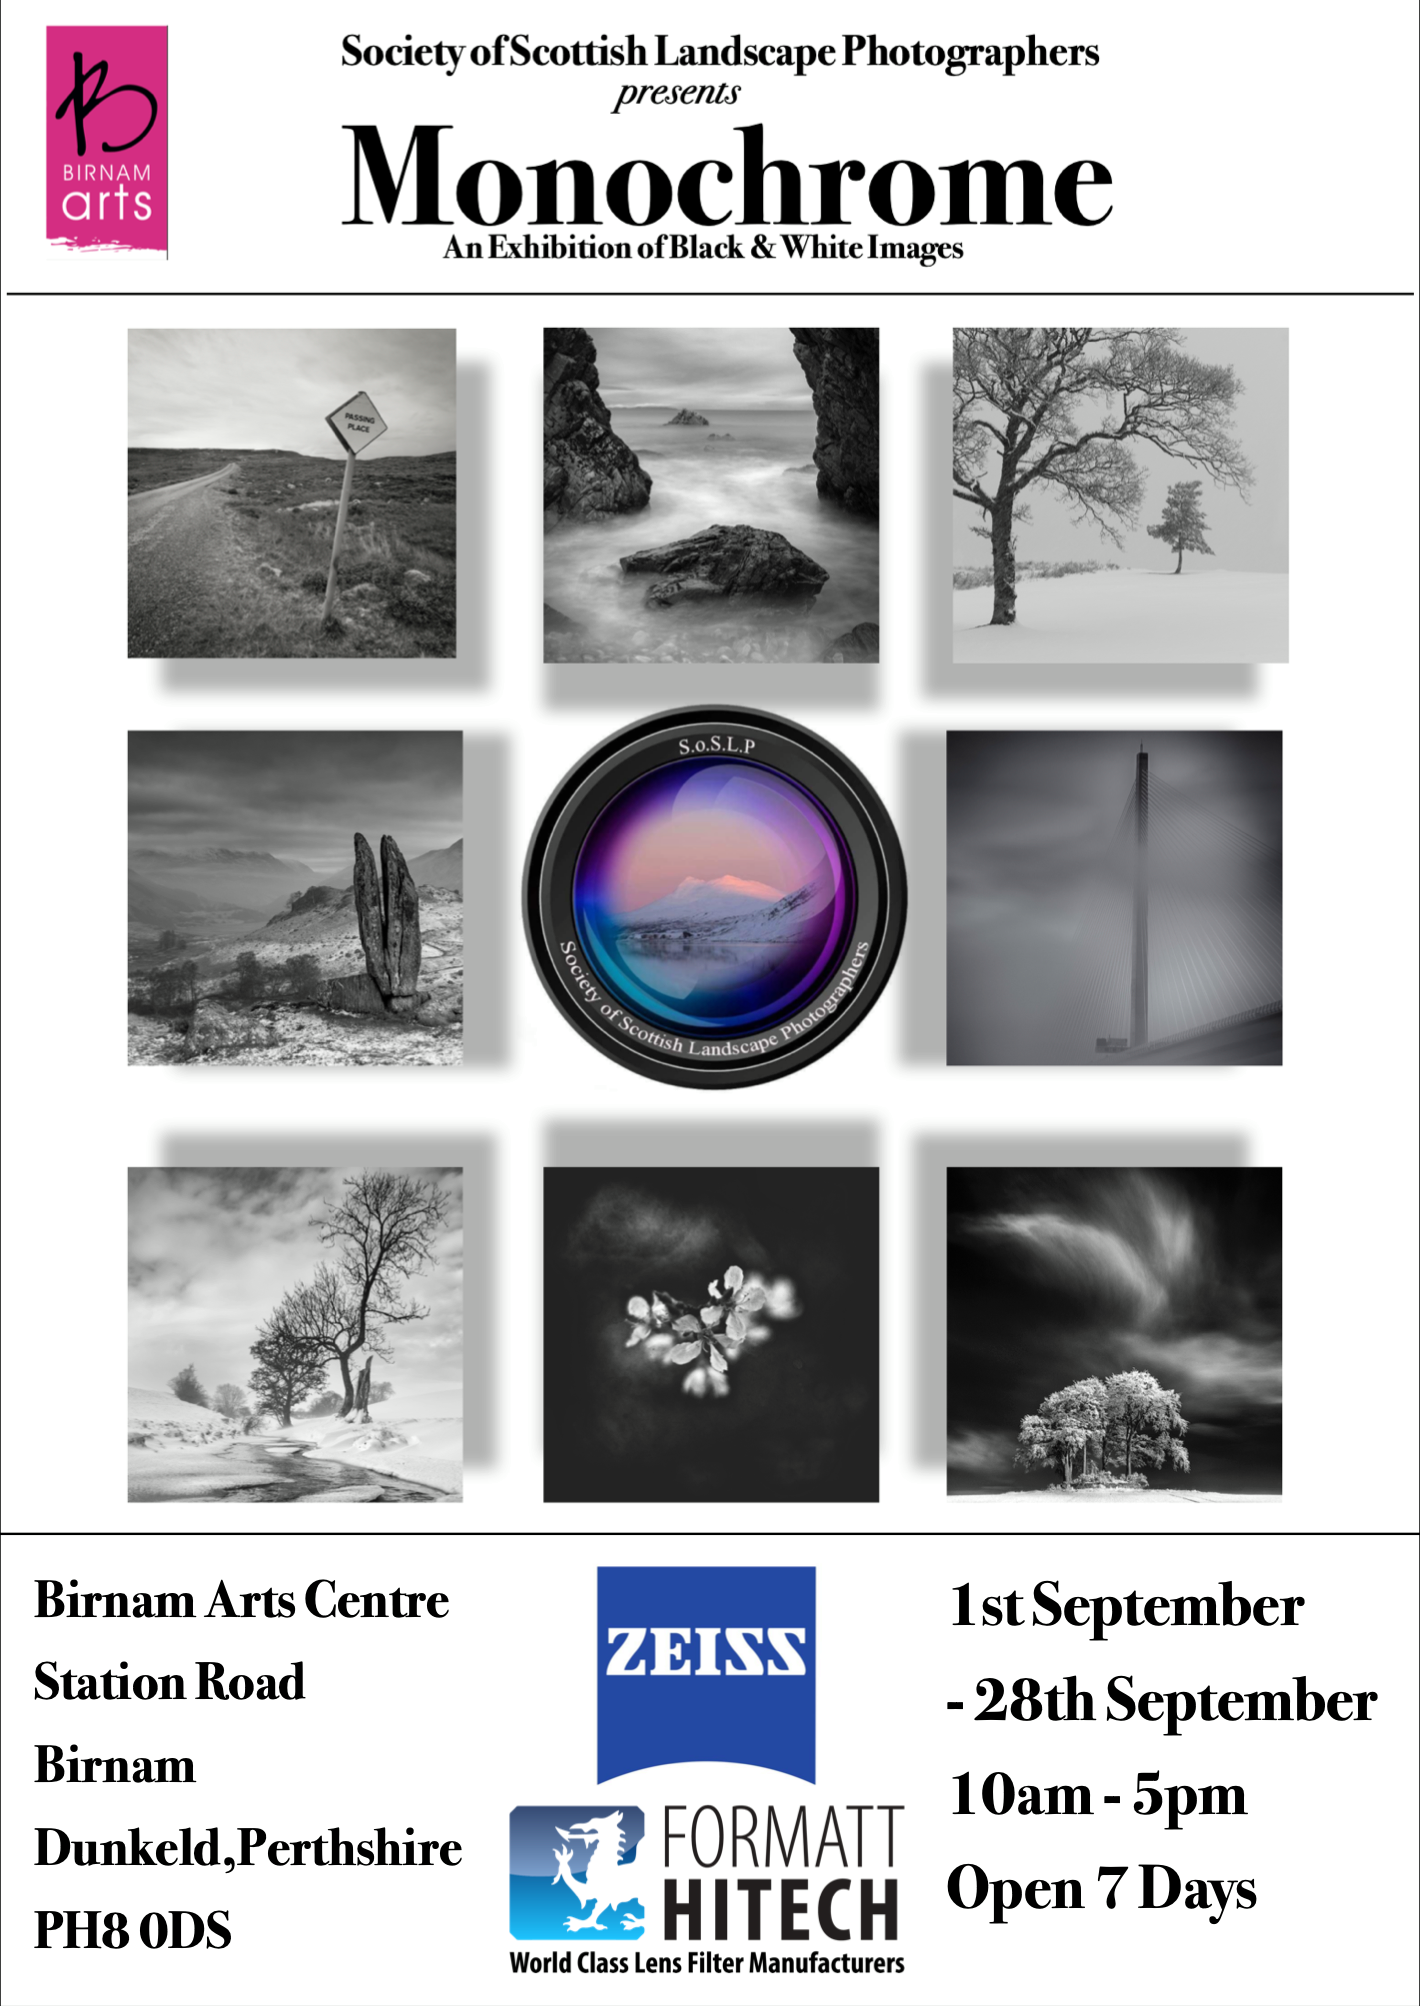 "Upcoming Exhibition! - We are proud to say that we are two of the seven photographers exhibiting in ""Monochrome"" a celebration of black & white photography.The exhibition runs from the 1st September to the 28th of September at Birnams Art Centre in Perthshire. The exhibition is free entry and well worth a visit to see some great mono work."